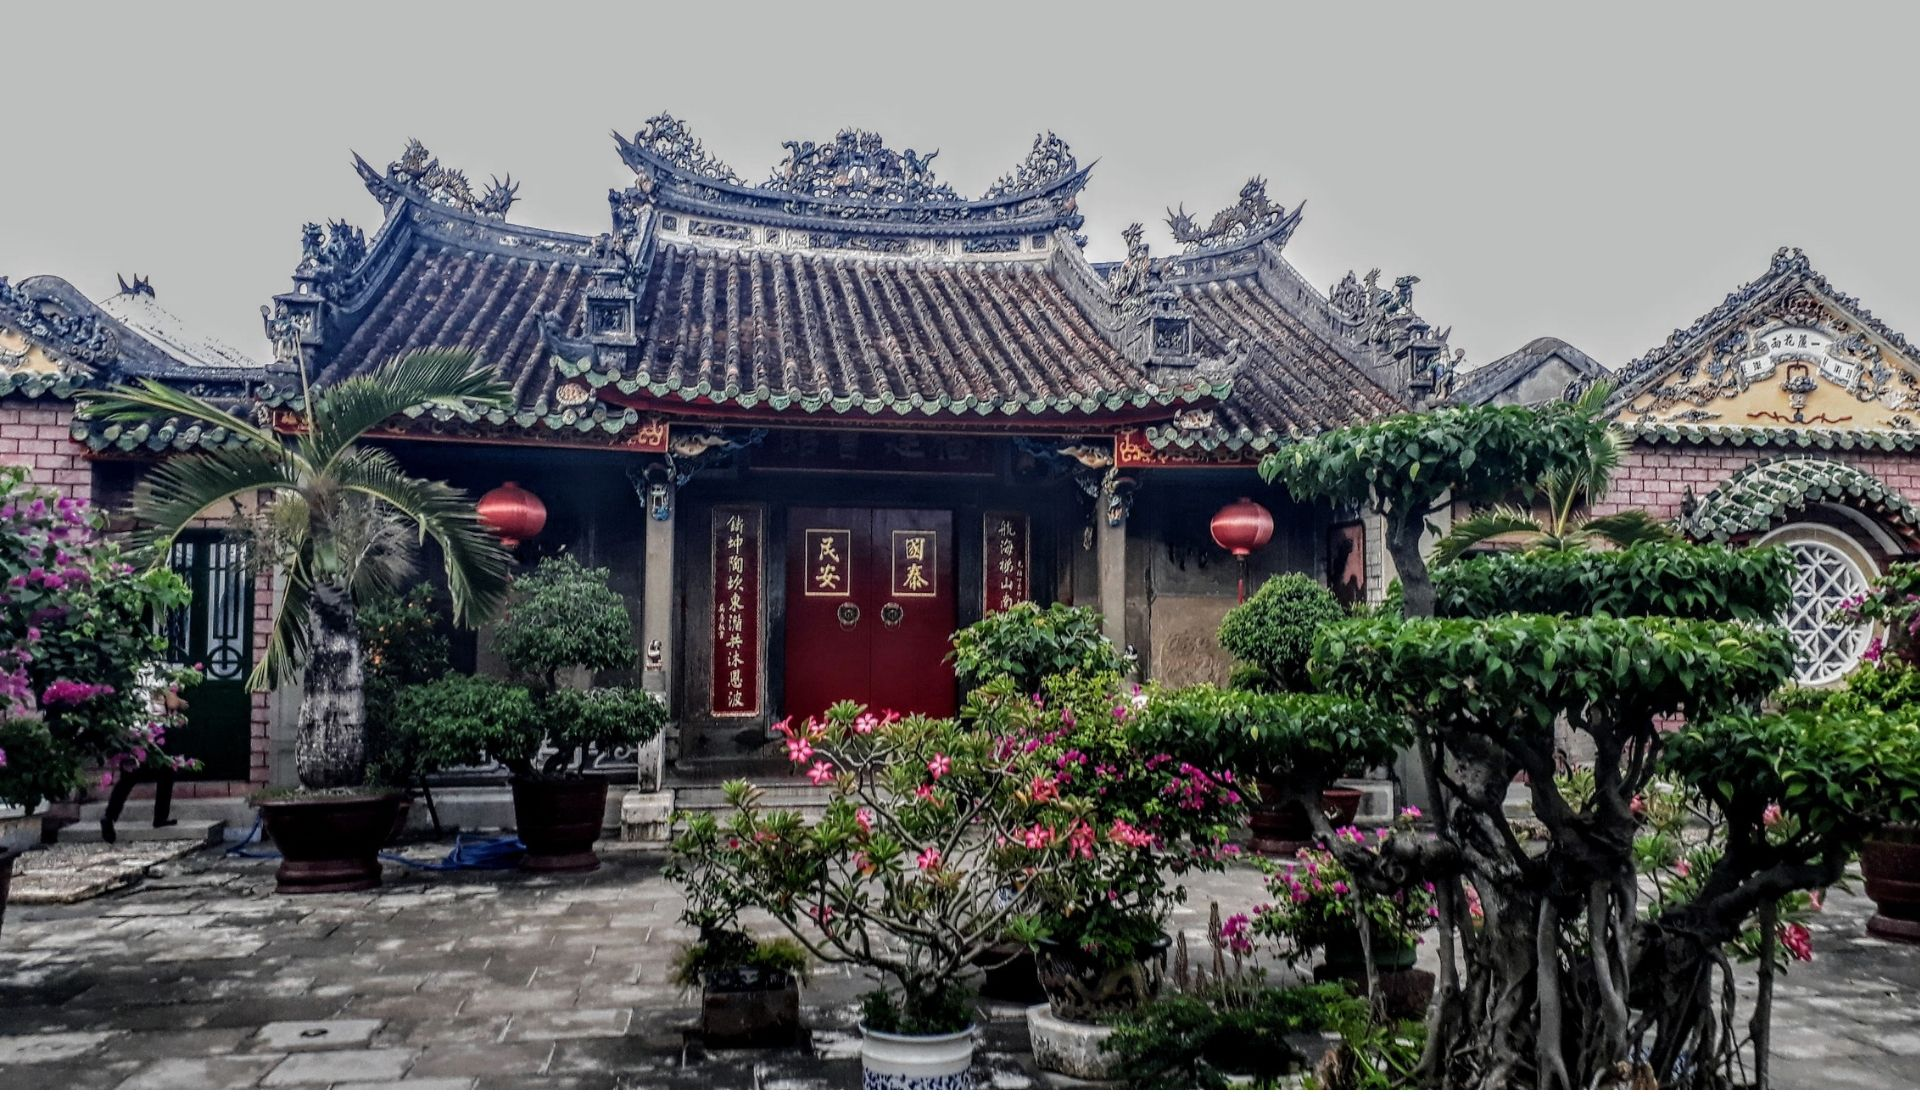 Quang Dong Temple